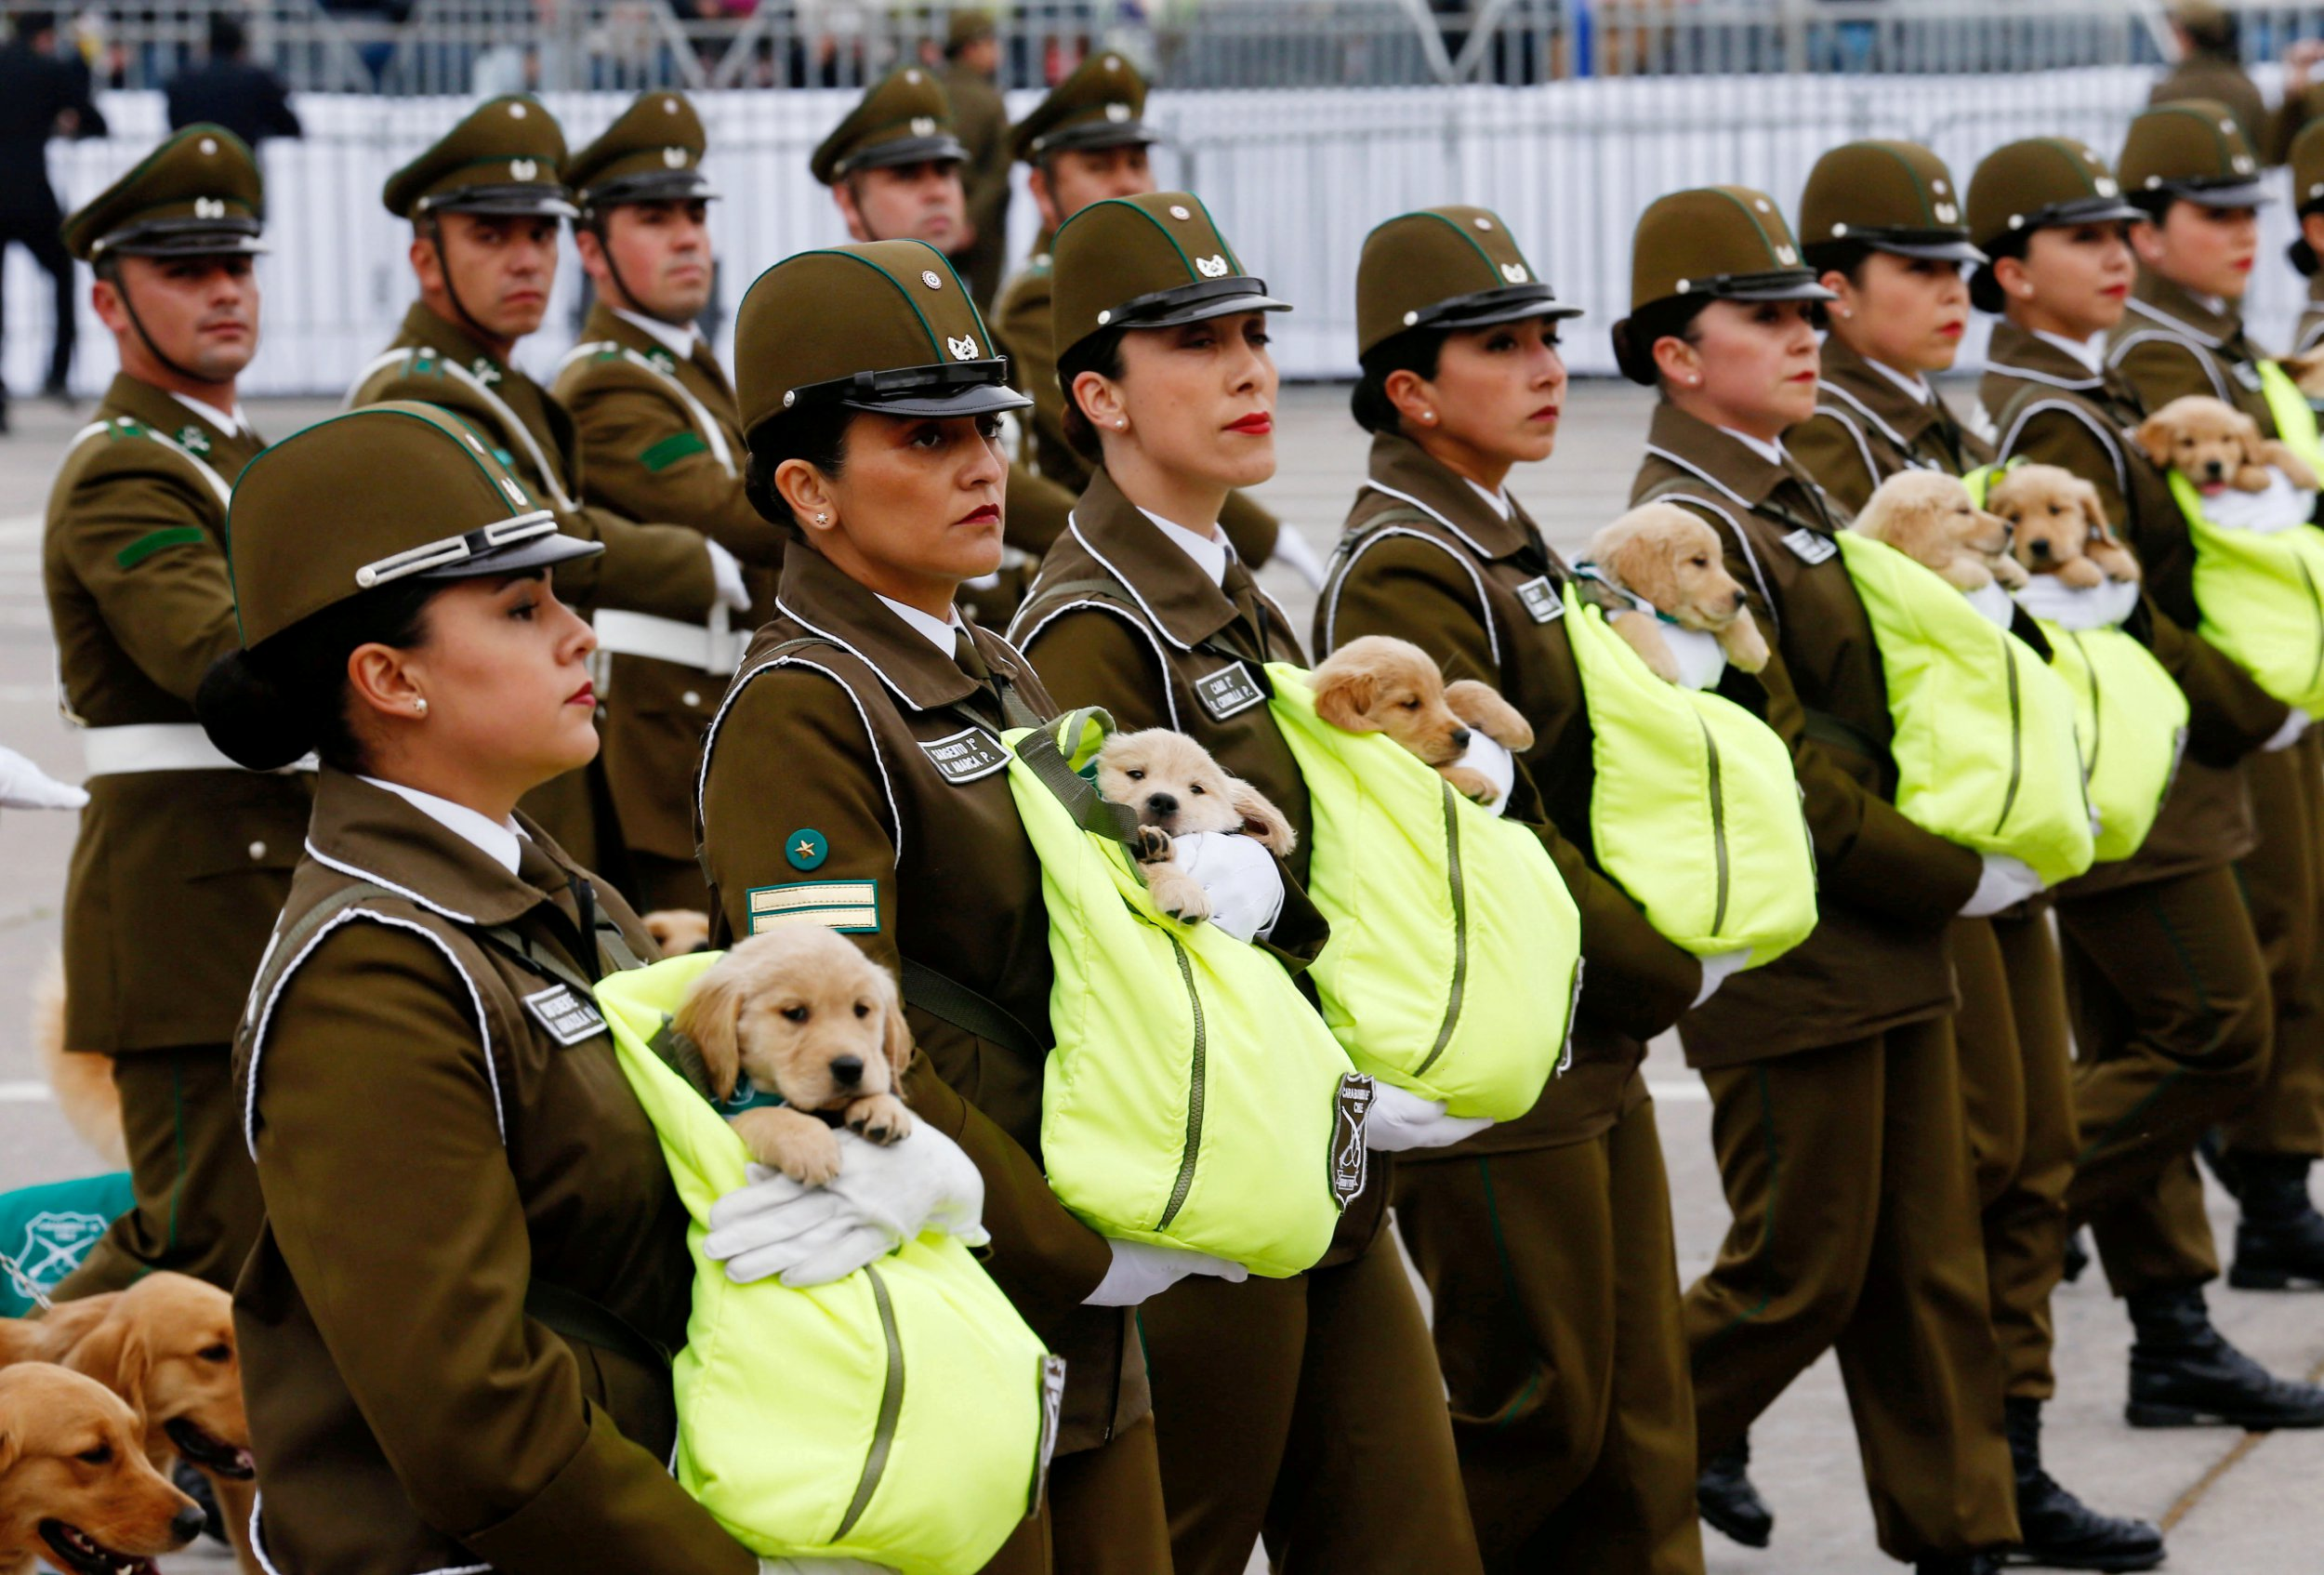 Snuggly police pups in their pouches at the Chilean military parade. (Picture: Rodrigo Garrido/Reuters)